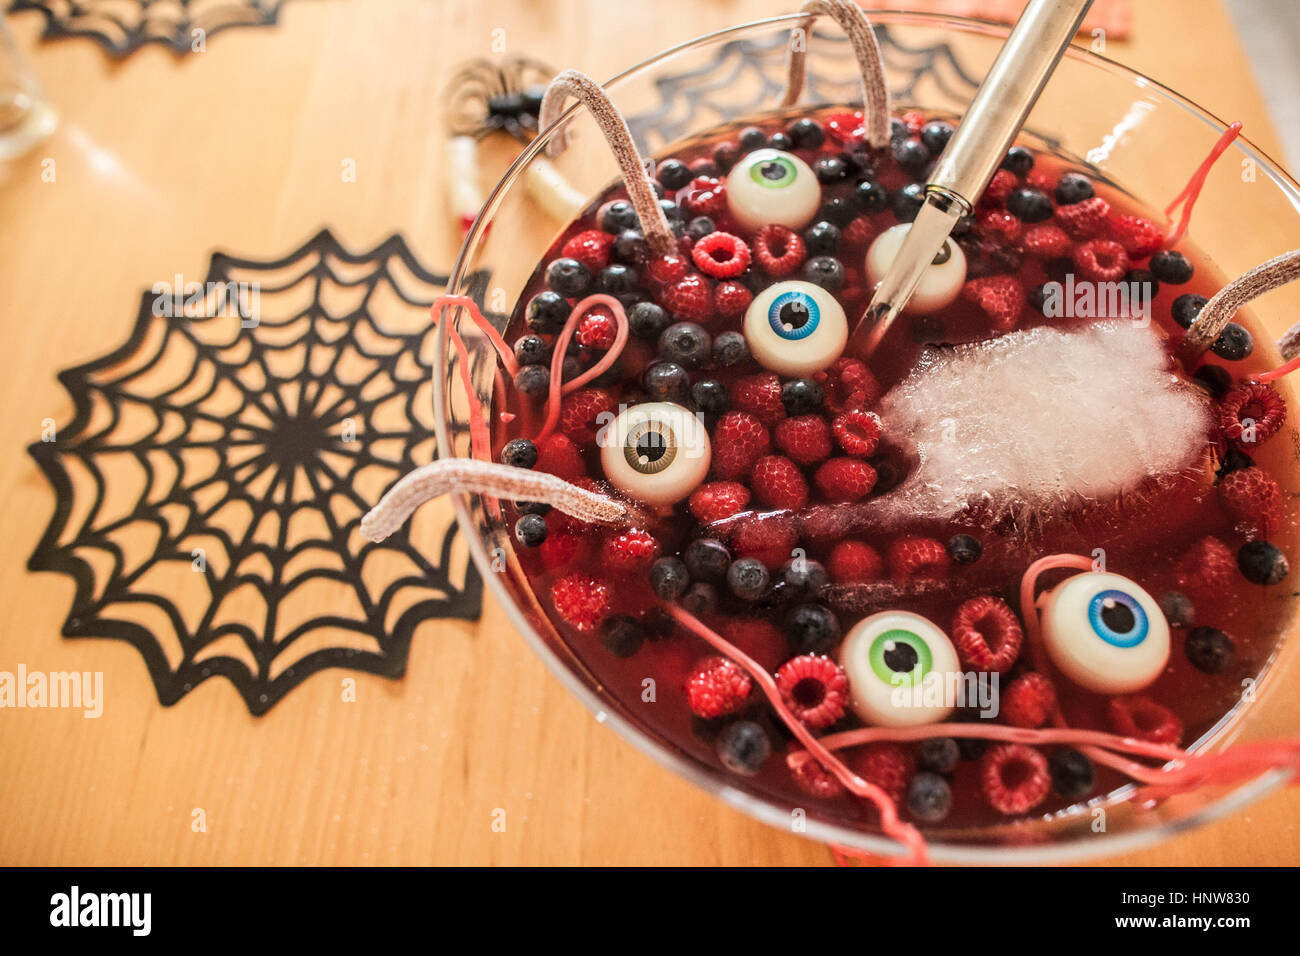 Halloween dessert with berries and floating eyeballs, close-up - Stock Image